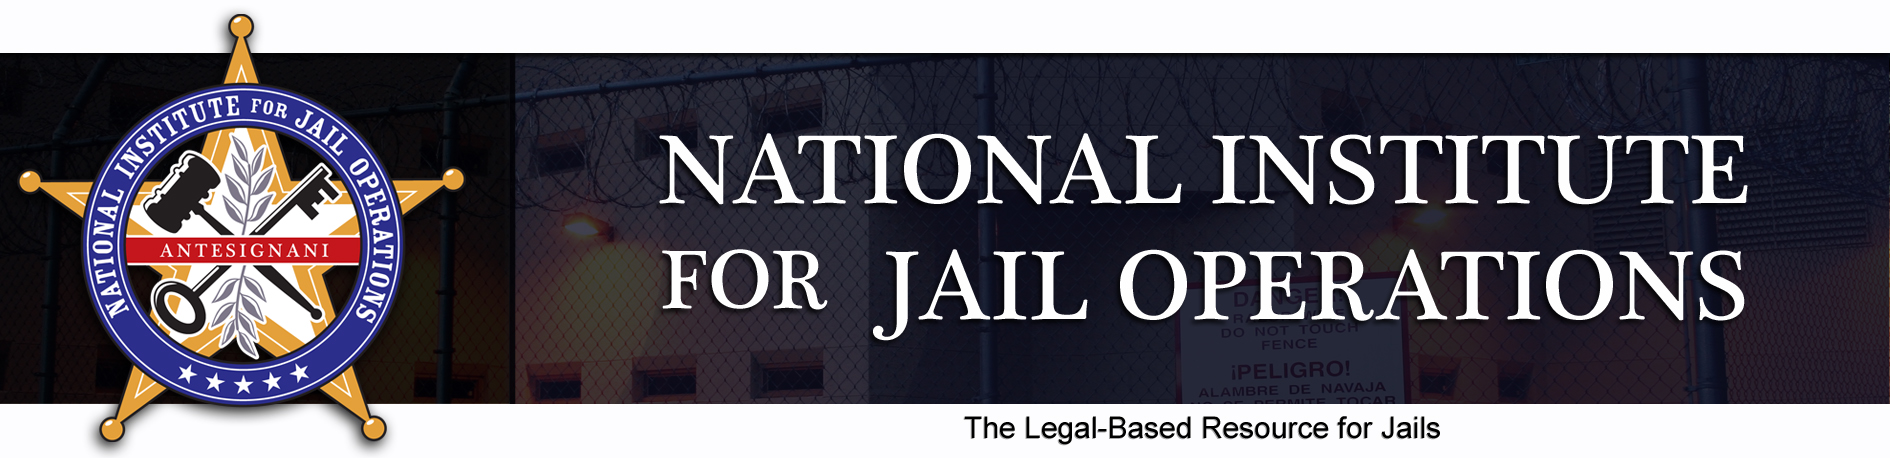 National Institute for Jail Operations